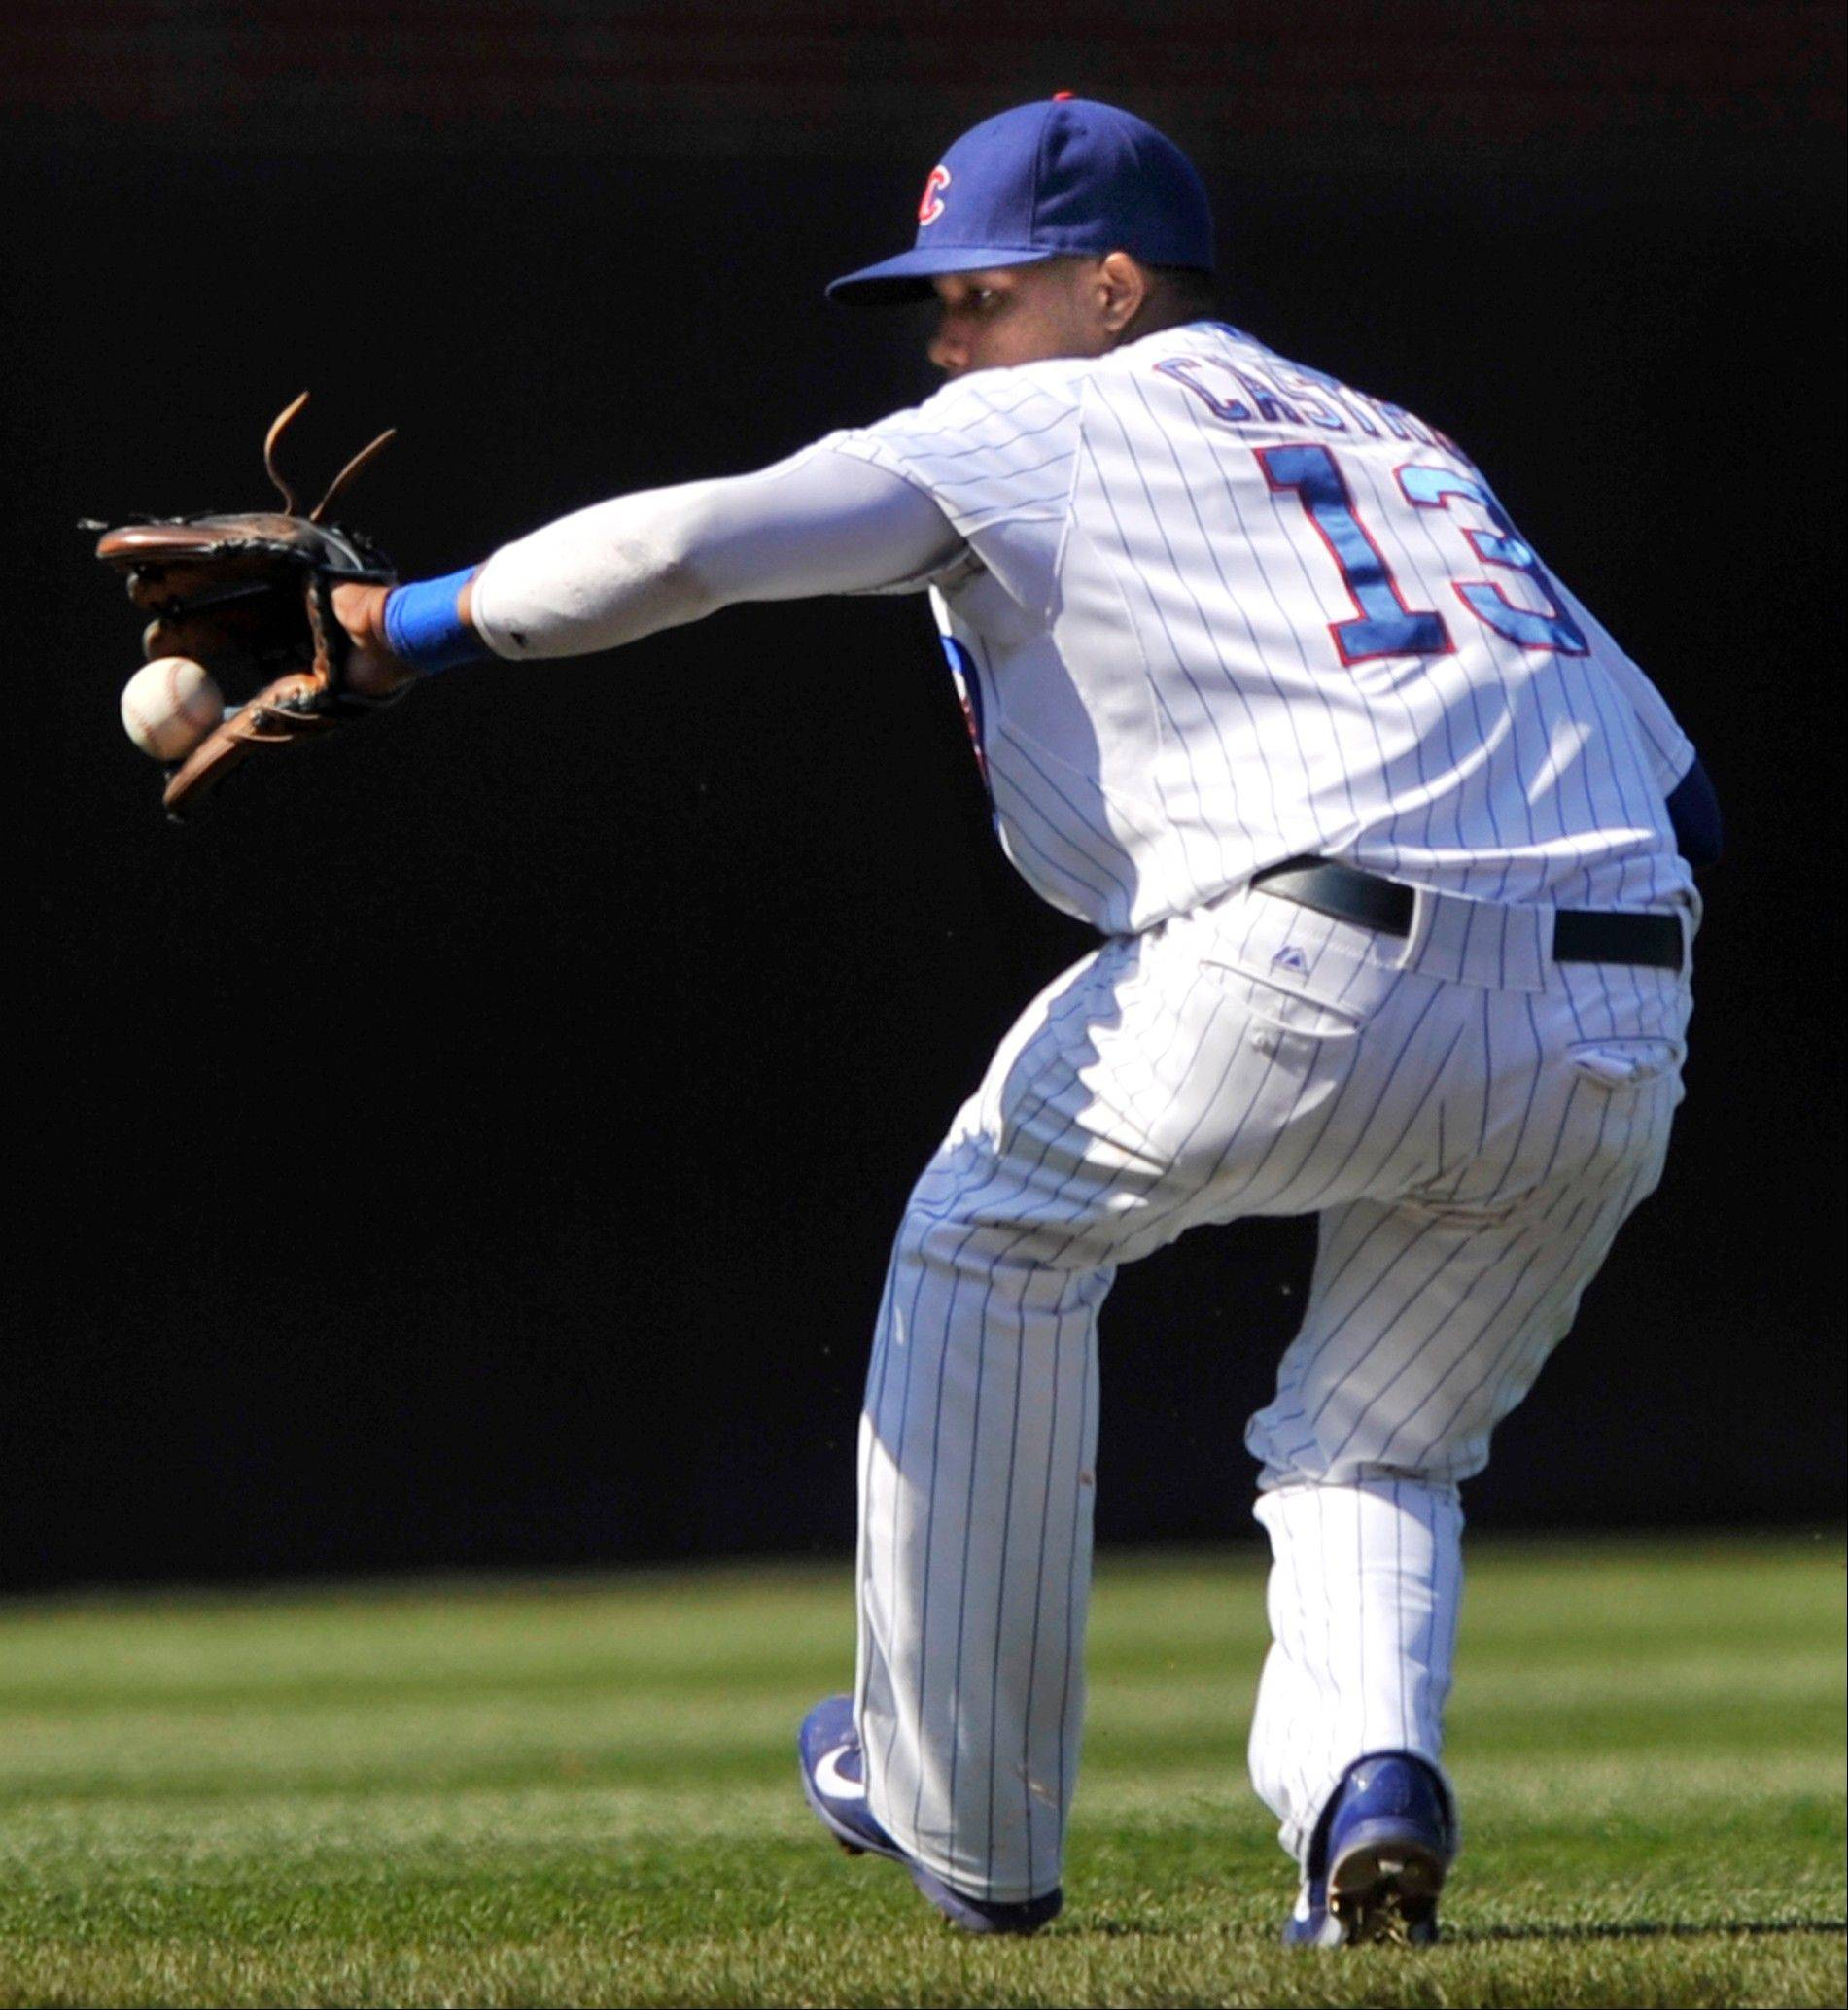 Castro benched, so what's next for Cubs shortstop?